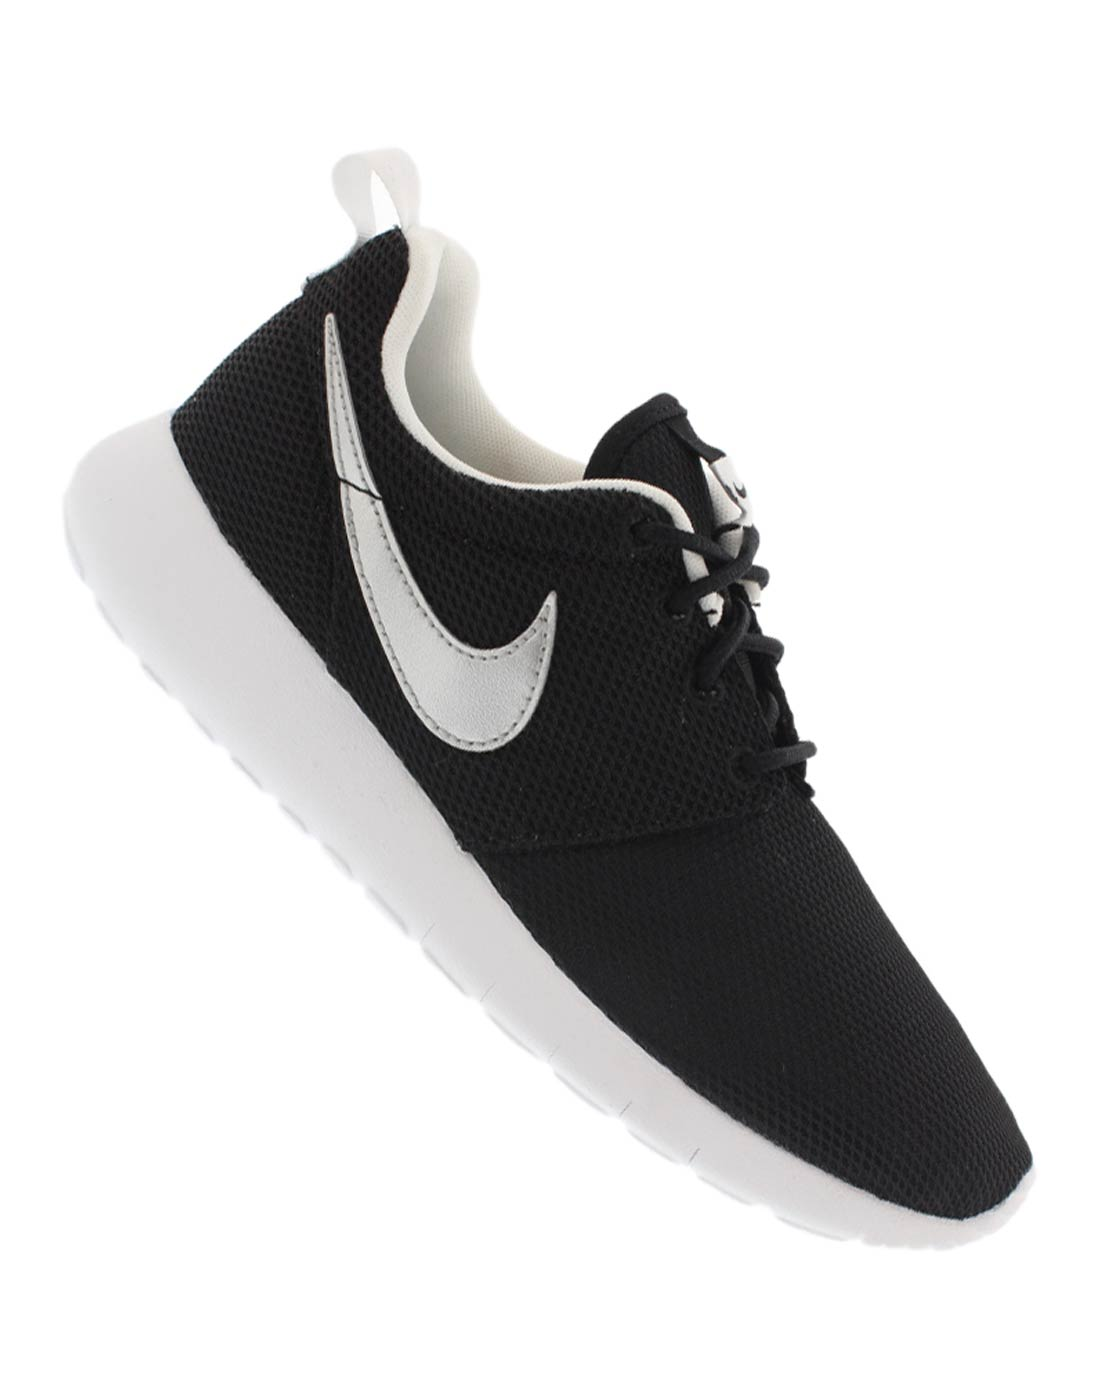 9300c45ad7cd4 Nike Older Kids Roshe One